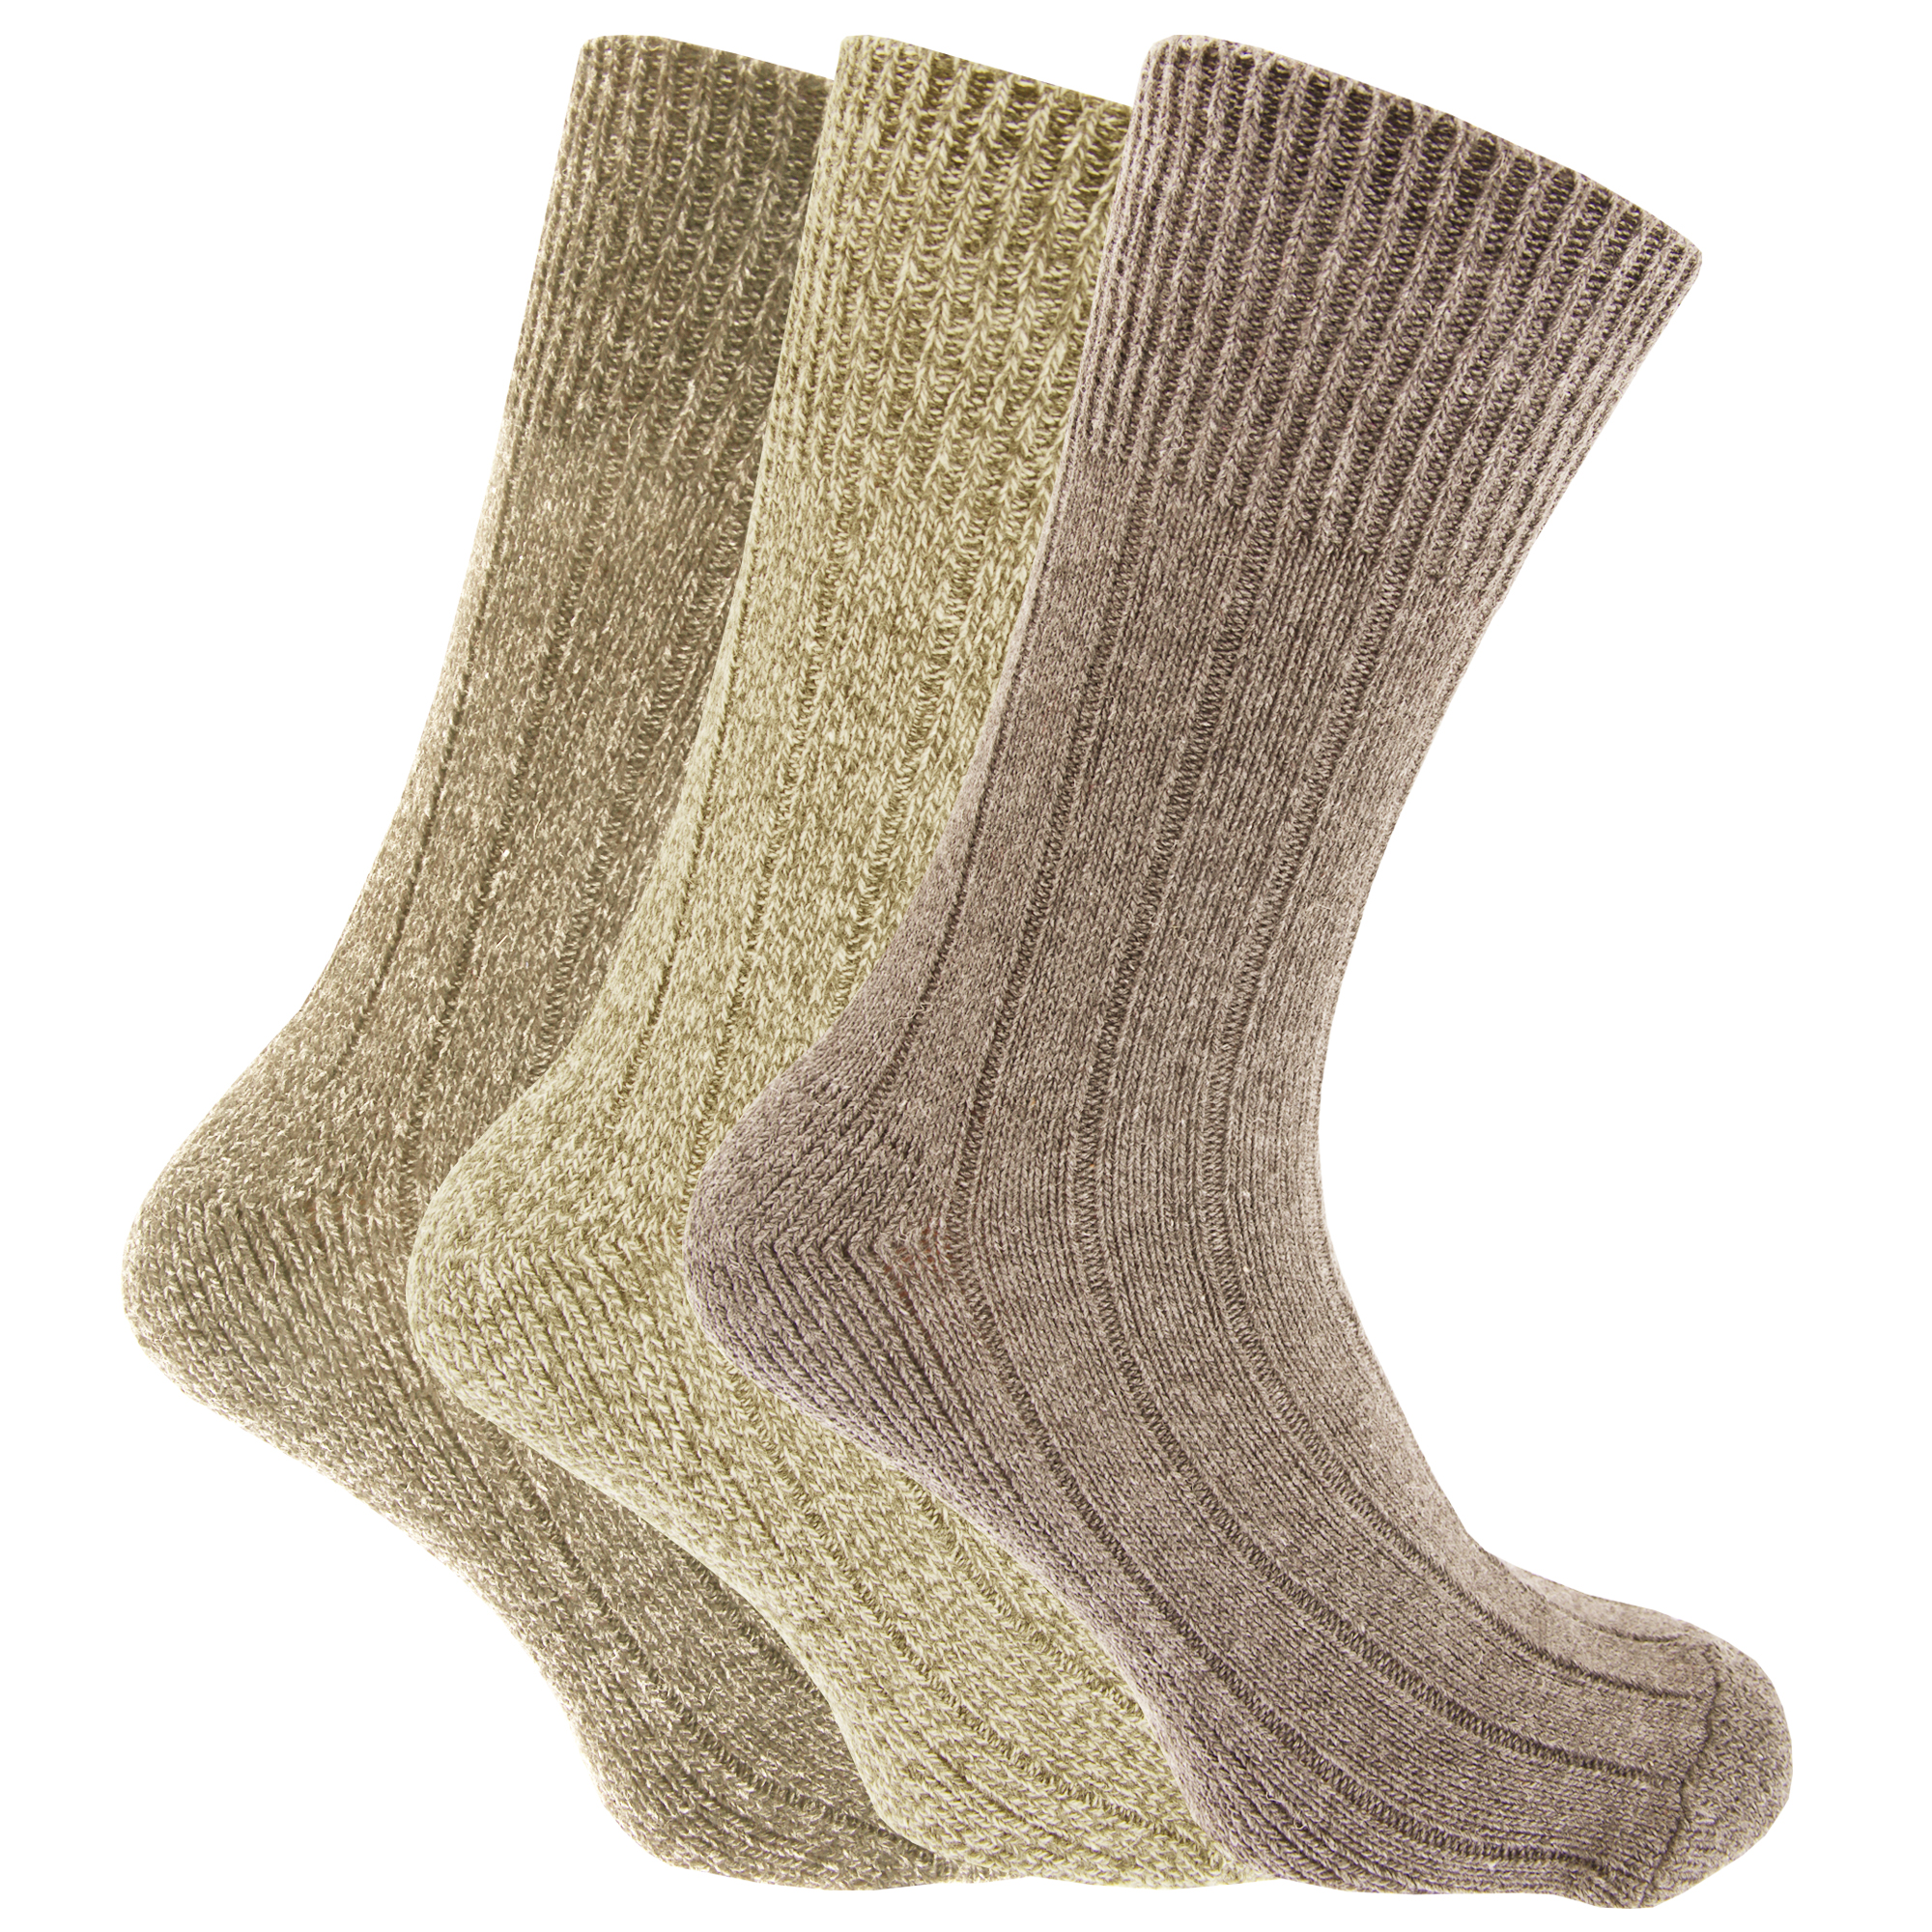 Merino wool casual socks for men. Feature 4 Degree® double elastic for snug fit that stays put. Medium cushion for impact, won't itch or hold odor.